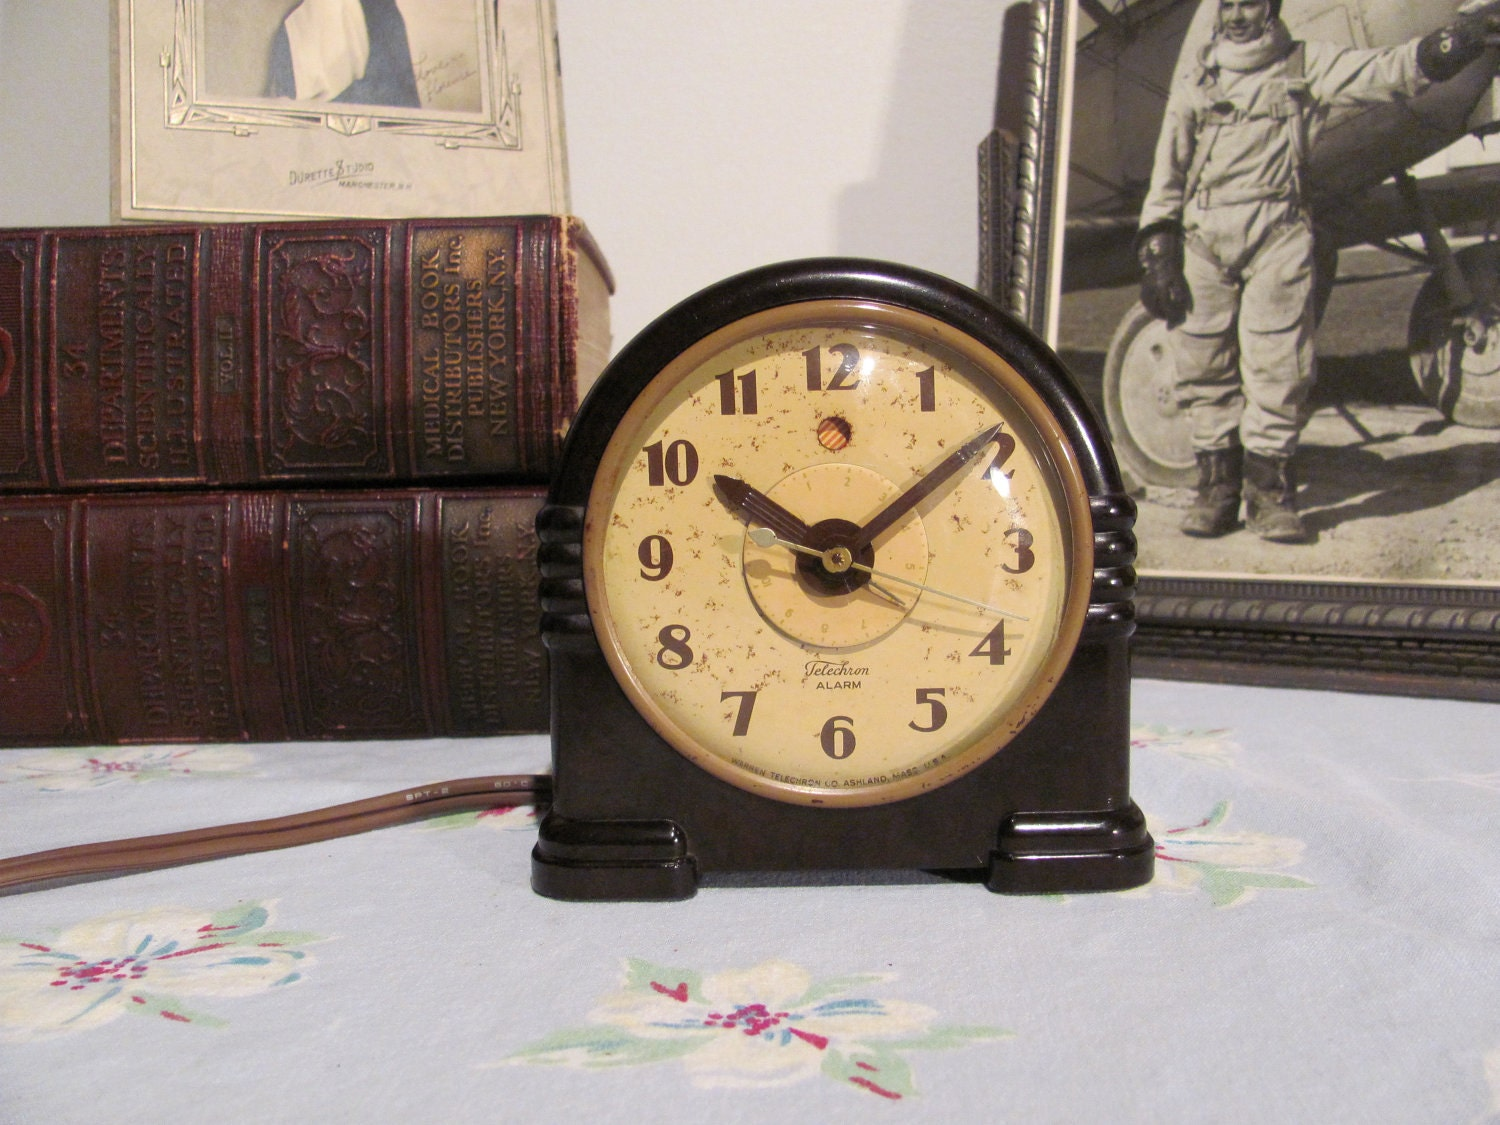 Art deco bakelite telechron alarm clock model 7h125 Art deco alarm clocks